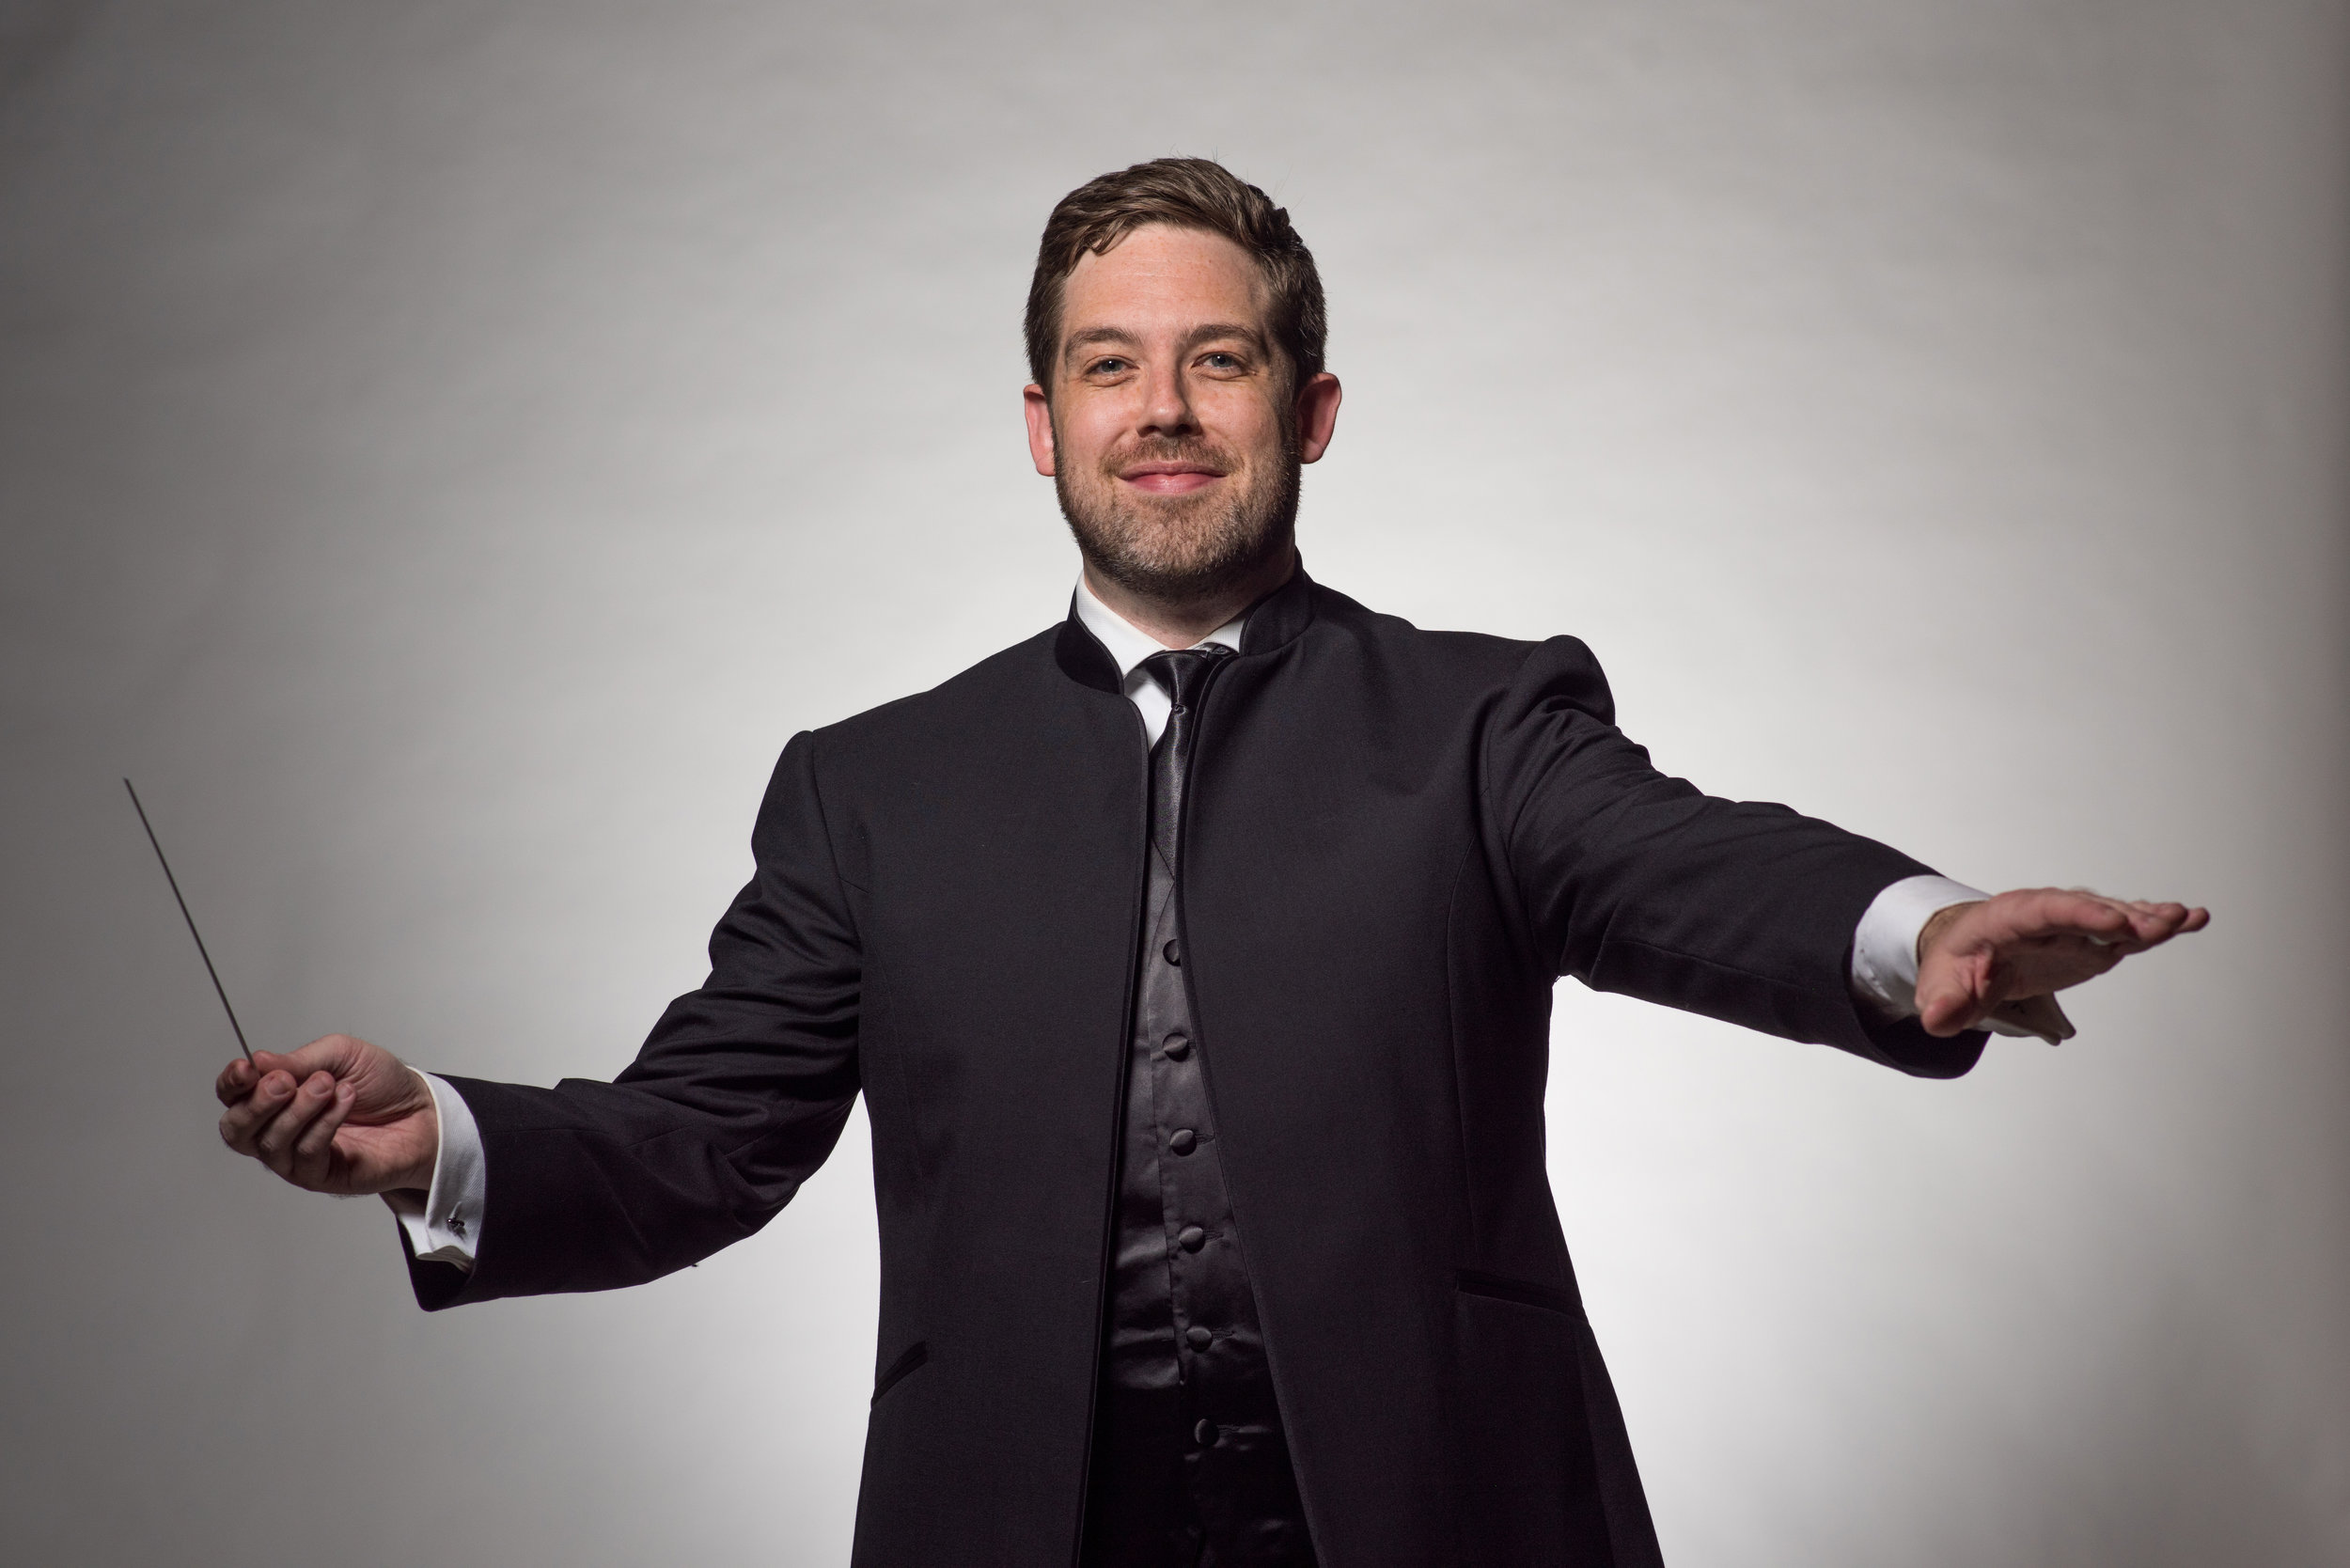 Brett Mitchell begins his tenure as Music Director of the Colorado Symphony on July 1, 2017. (Photo by Peter Lockley)